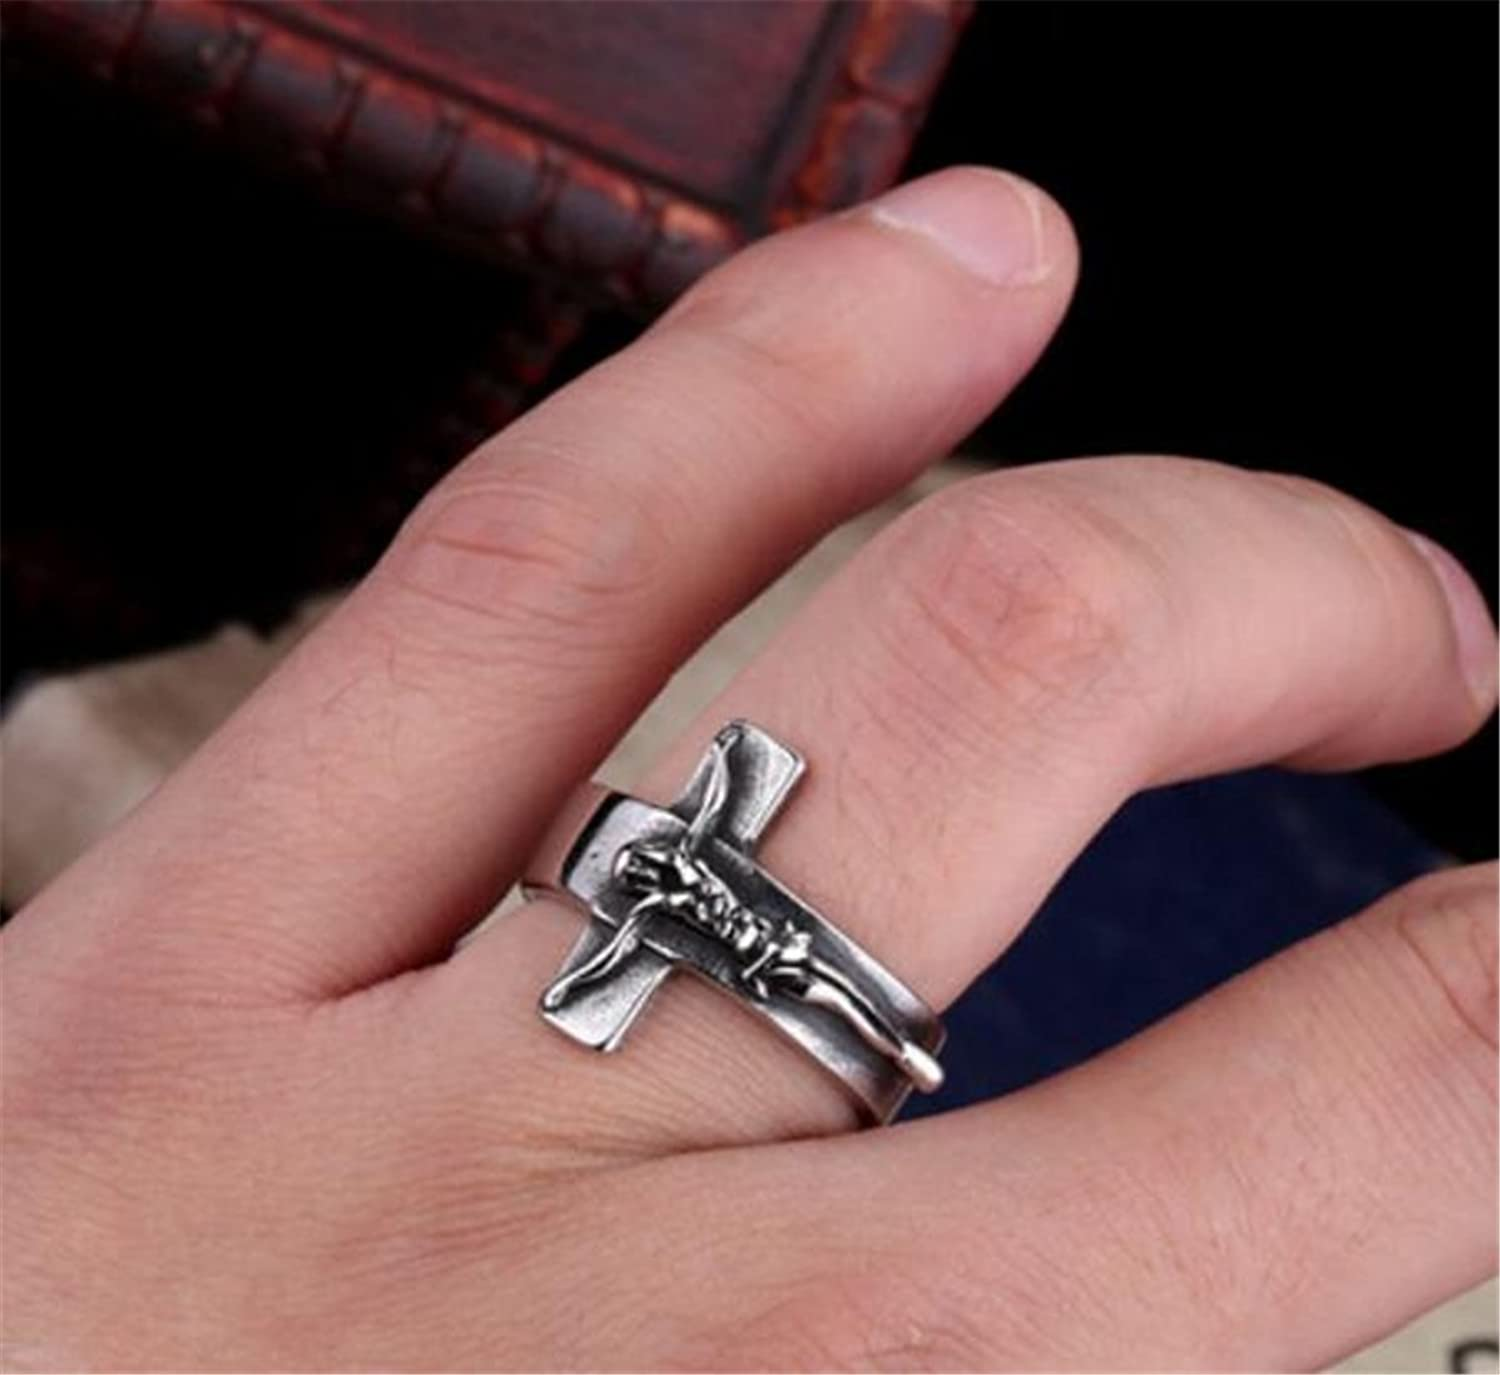 vault uk free limited comfort fit ring delivery band gold crucifix rings shop wedding